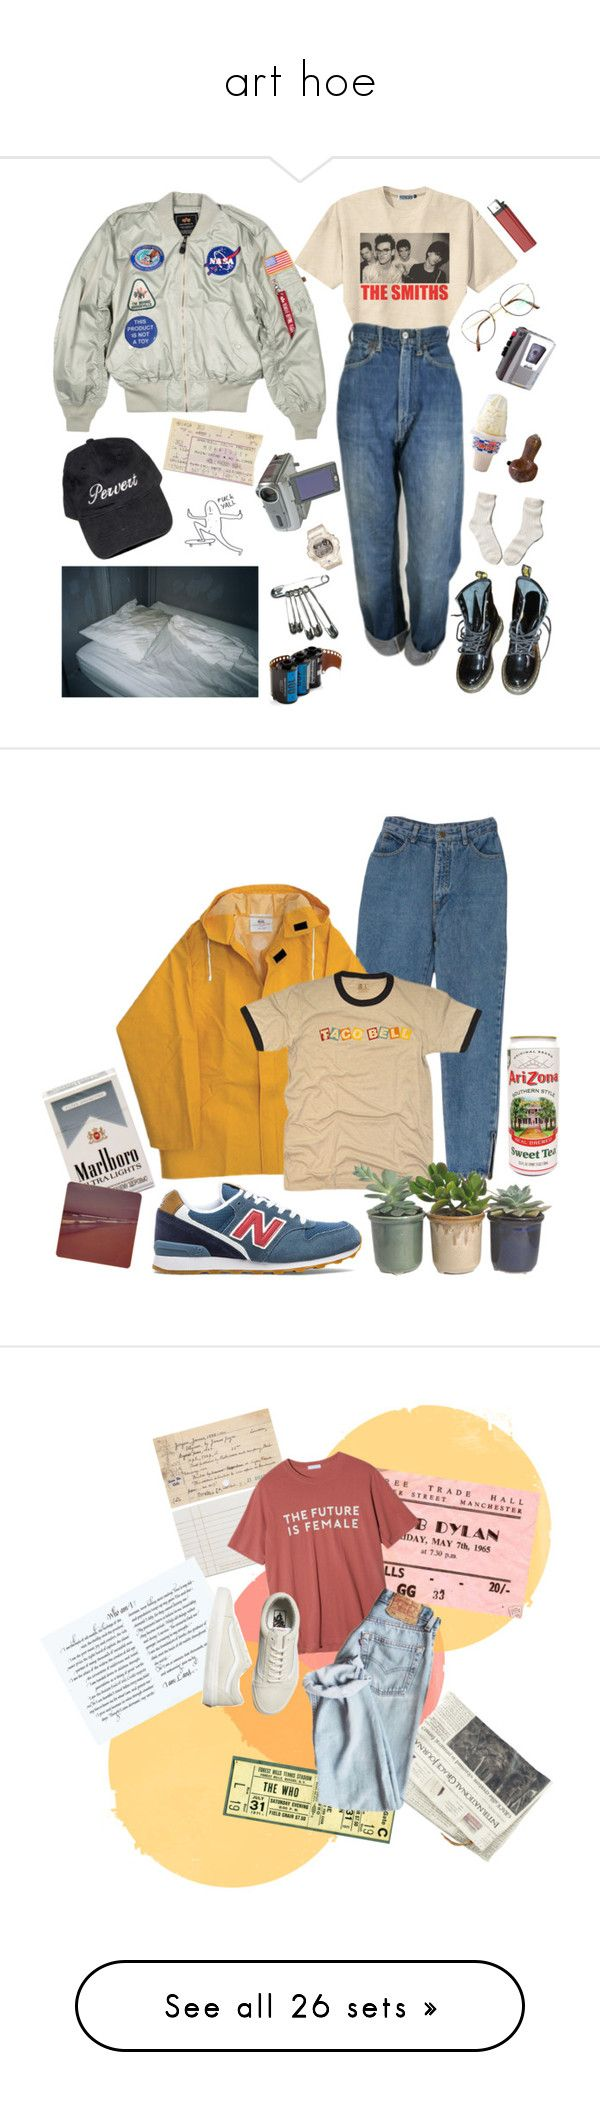 """art hoe"" by litzoromanian ❤ liked on Polyvore featuring Retrò, Levi's, Benetton, Baby-G, Sony, Dr. Martens, Abercrombie & Fitch, Lomography, New Balance and Hostess"